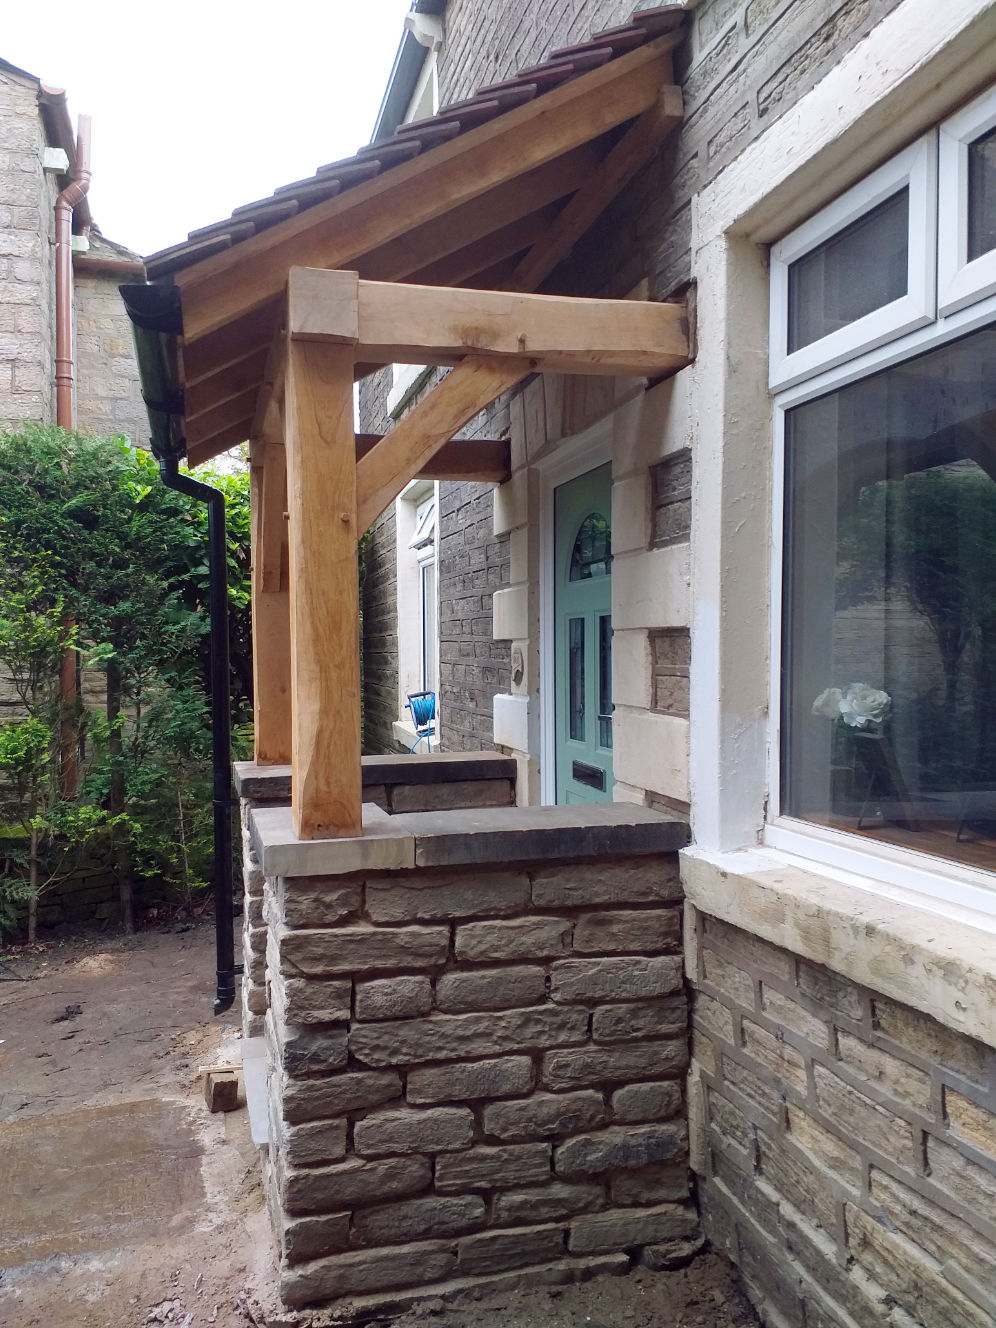 side detail, Porch with traditional Oak Frame, stone work, pitched roof complete with rain gutters